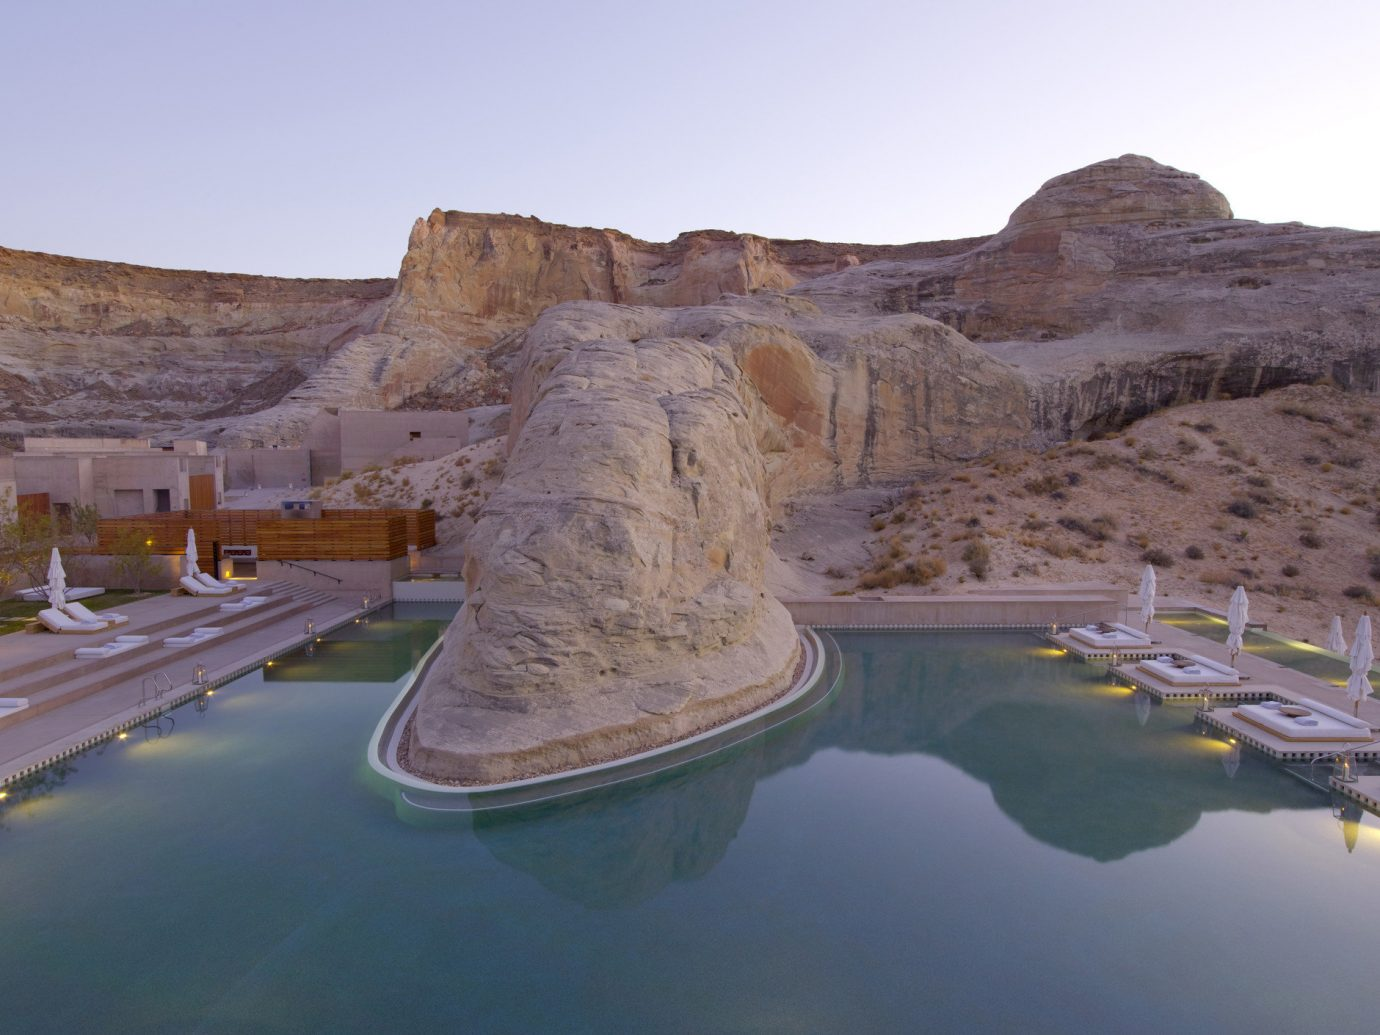 ambient lighting Hotels lounge chairs Luxury Pool Rocks sky outdoor mountain valley badlands Lake wadi landscape reflection reservoir terrain cliff